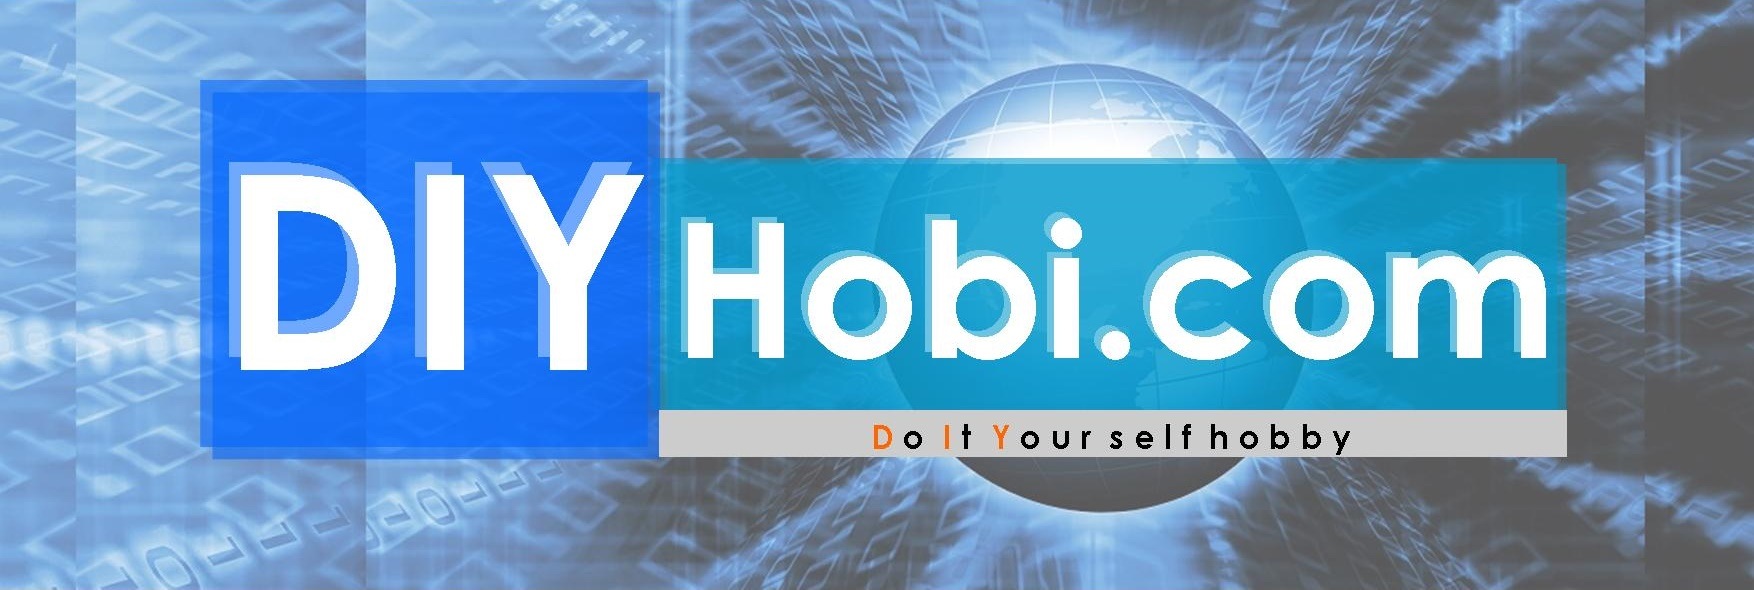 Do it your self hobby